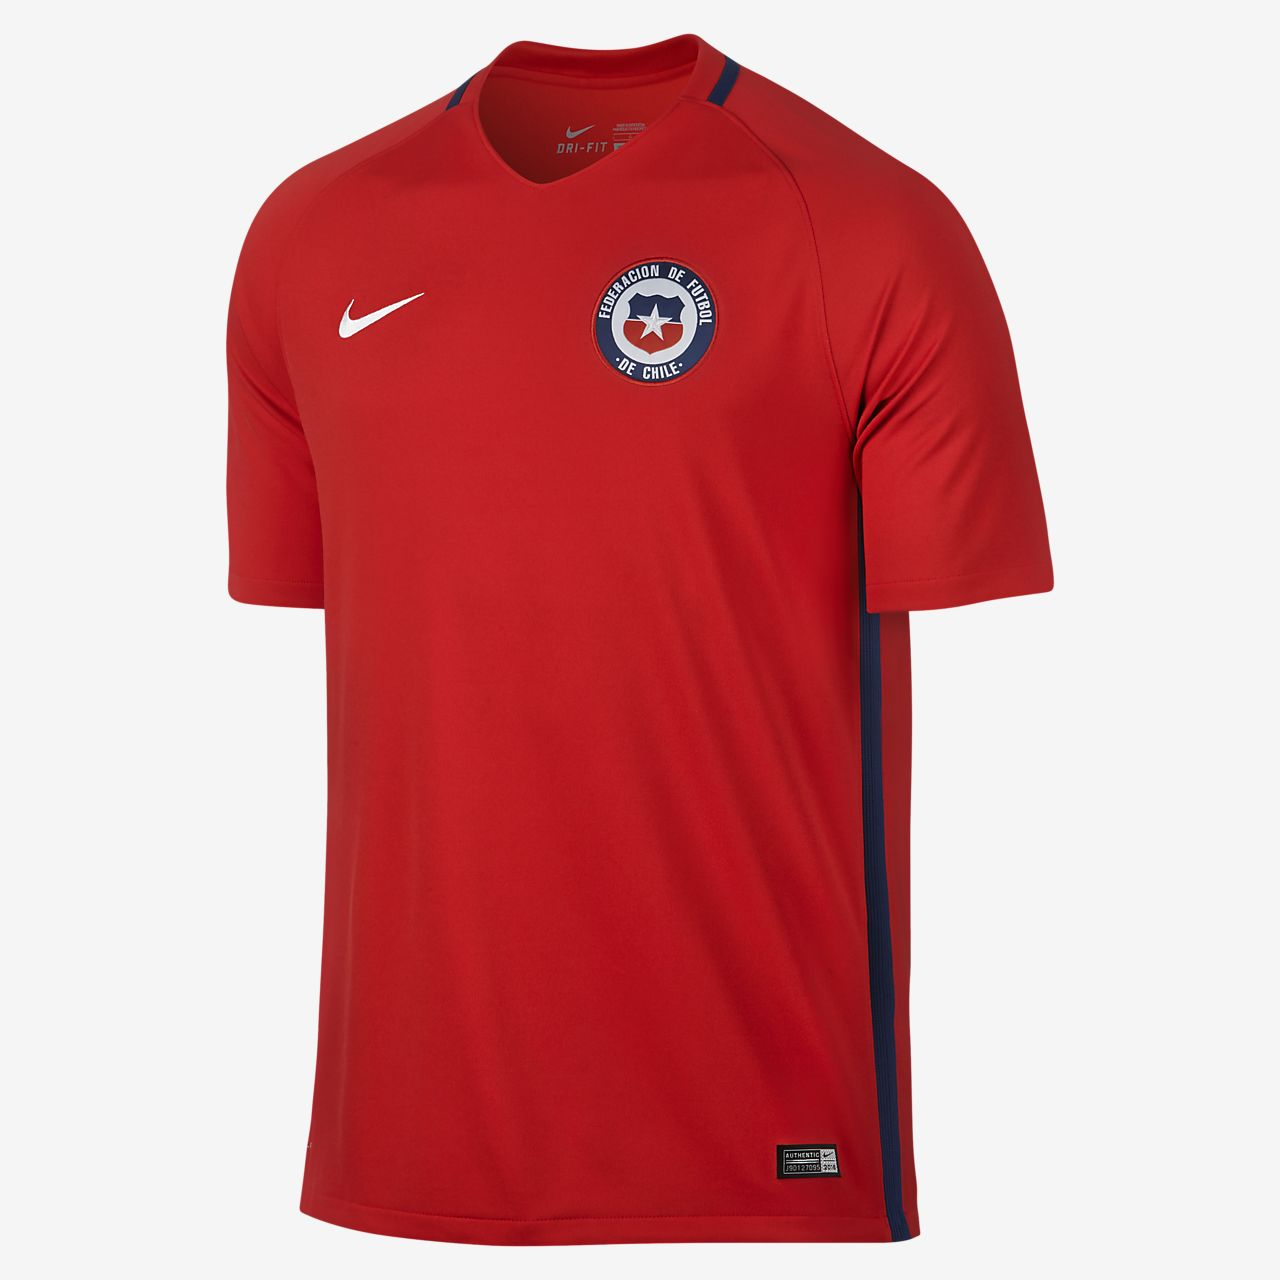 2016 Chile Stadium Home/Away Men\u0027s Football Shirt. Nike.com SA